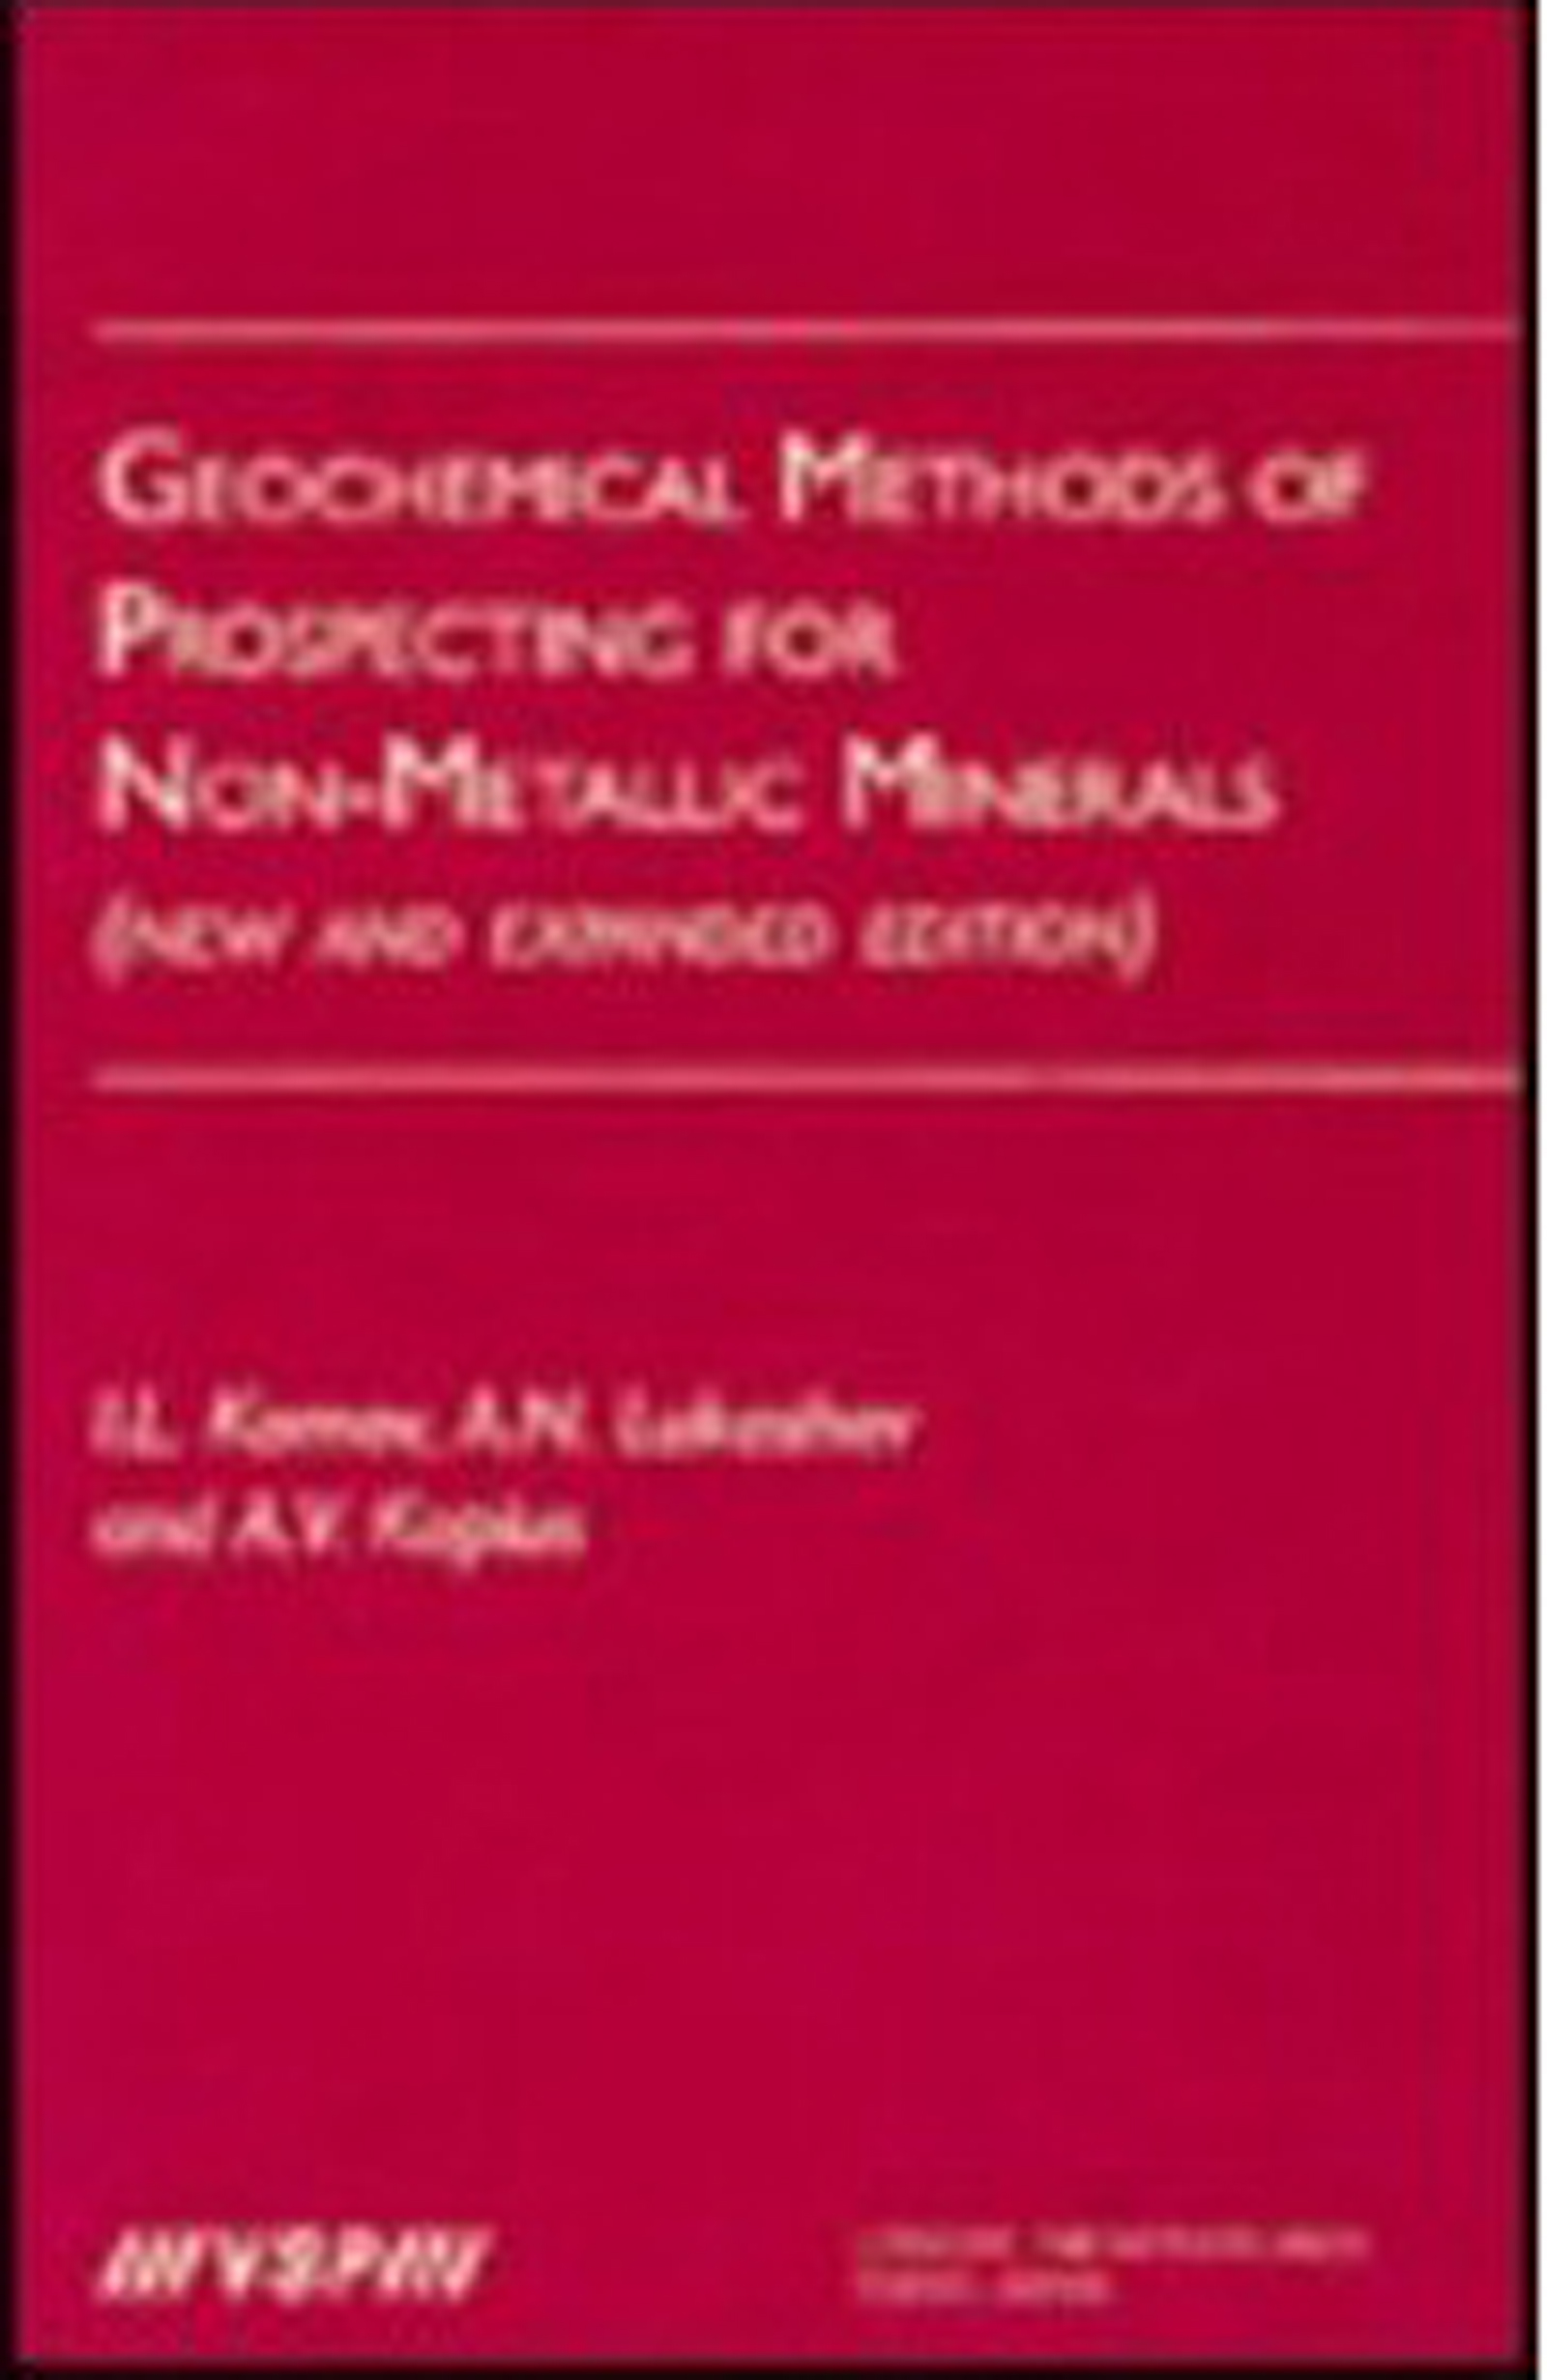 Geochemical Methods of Prospecting for Non-Metallic Minerals